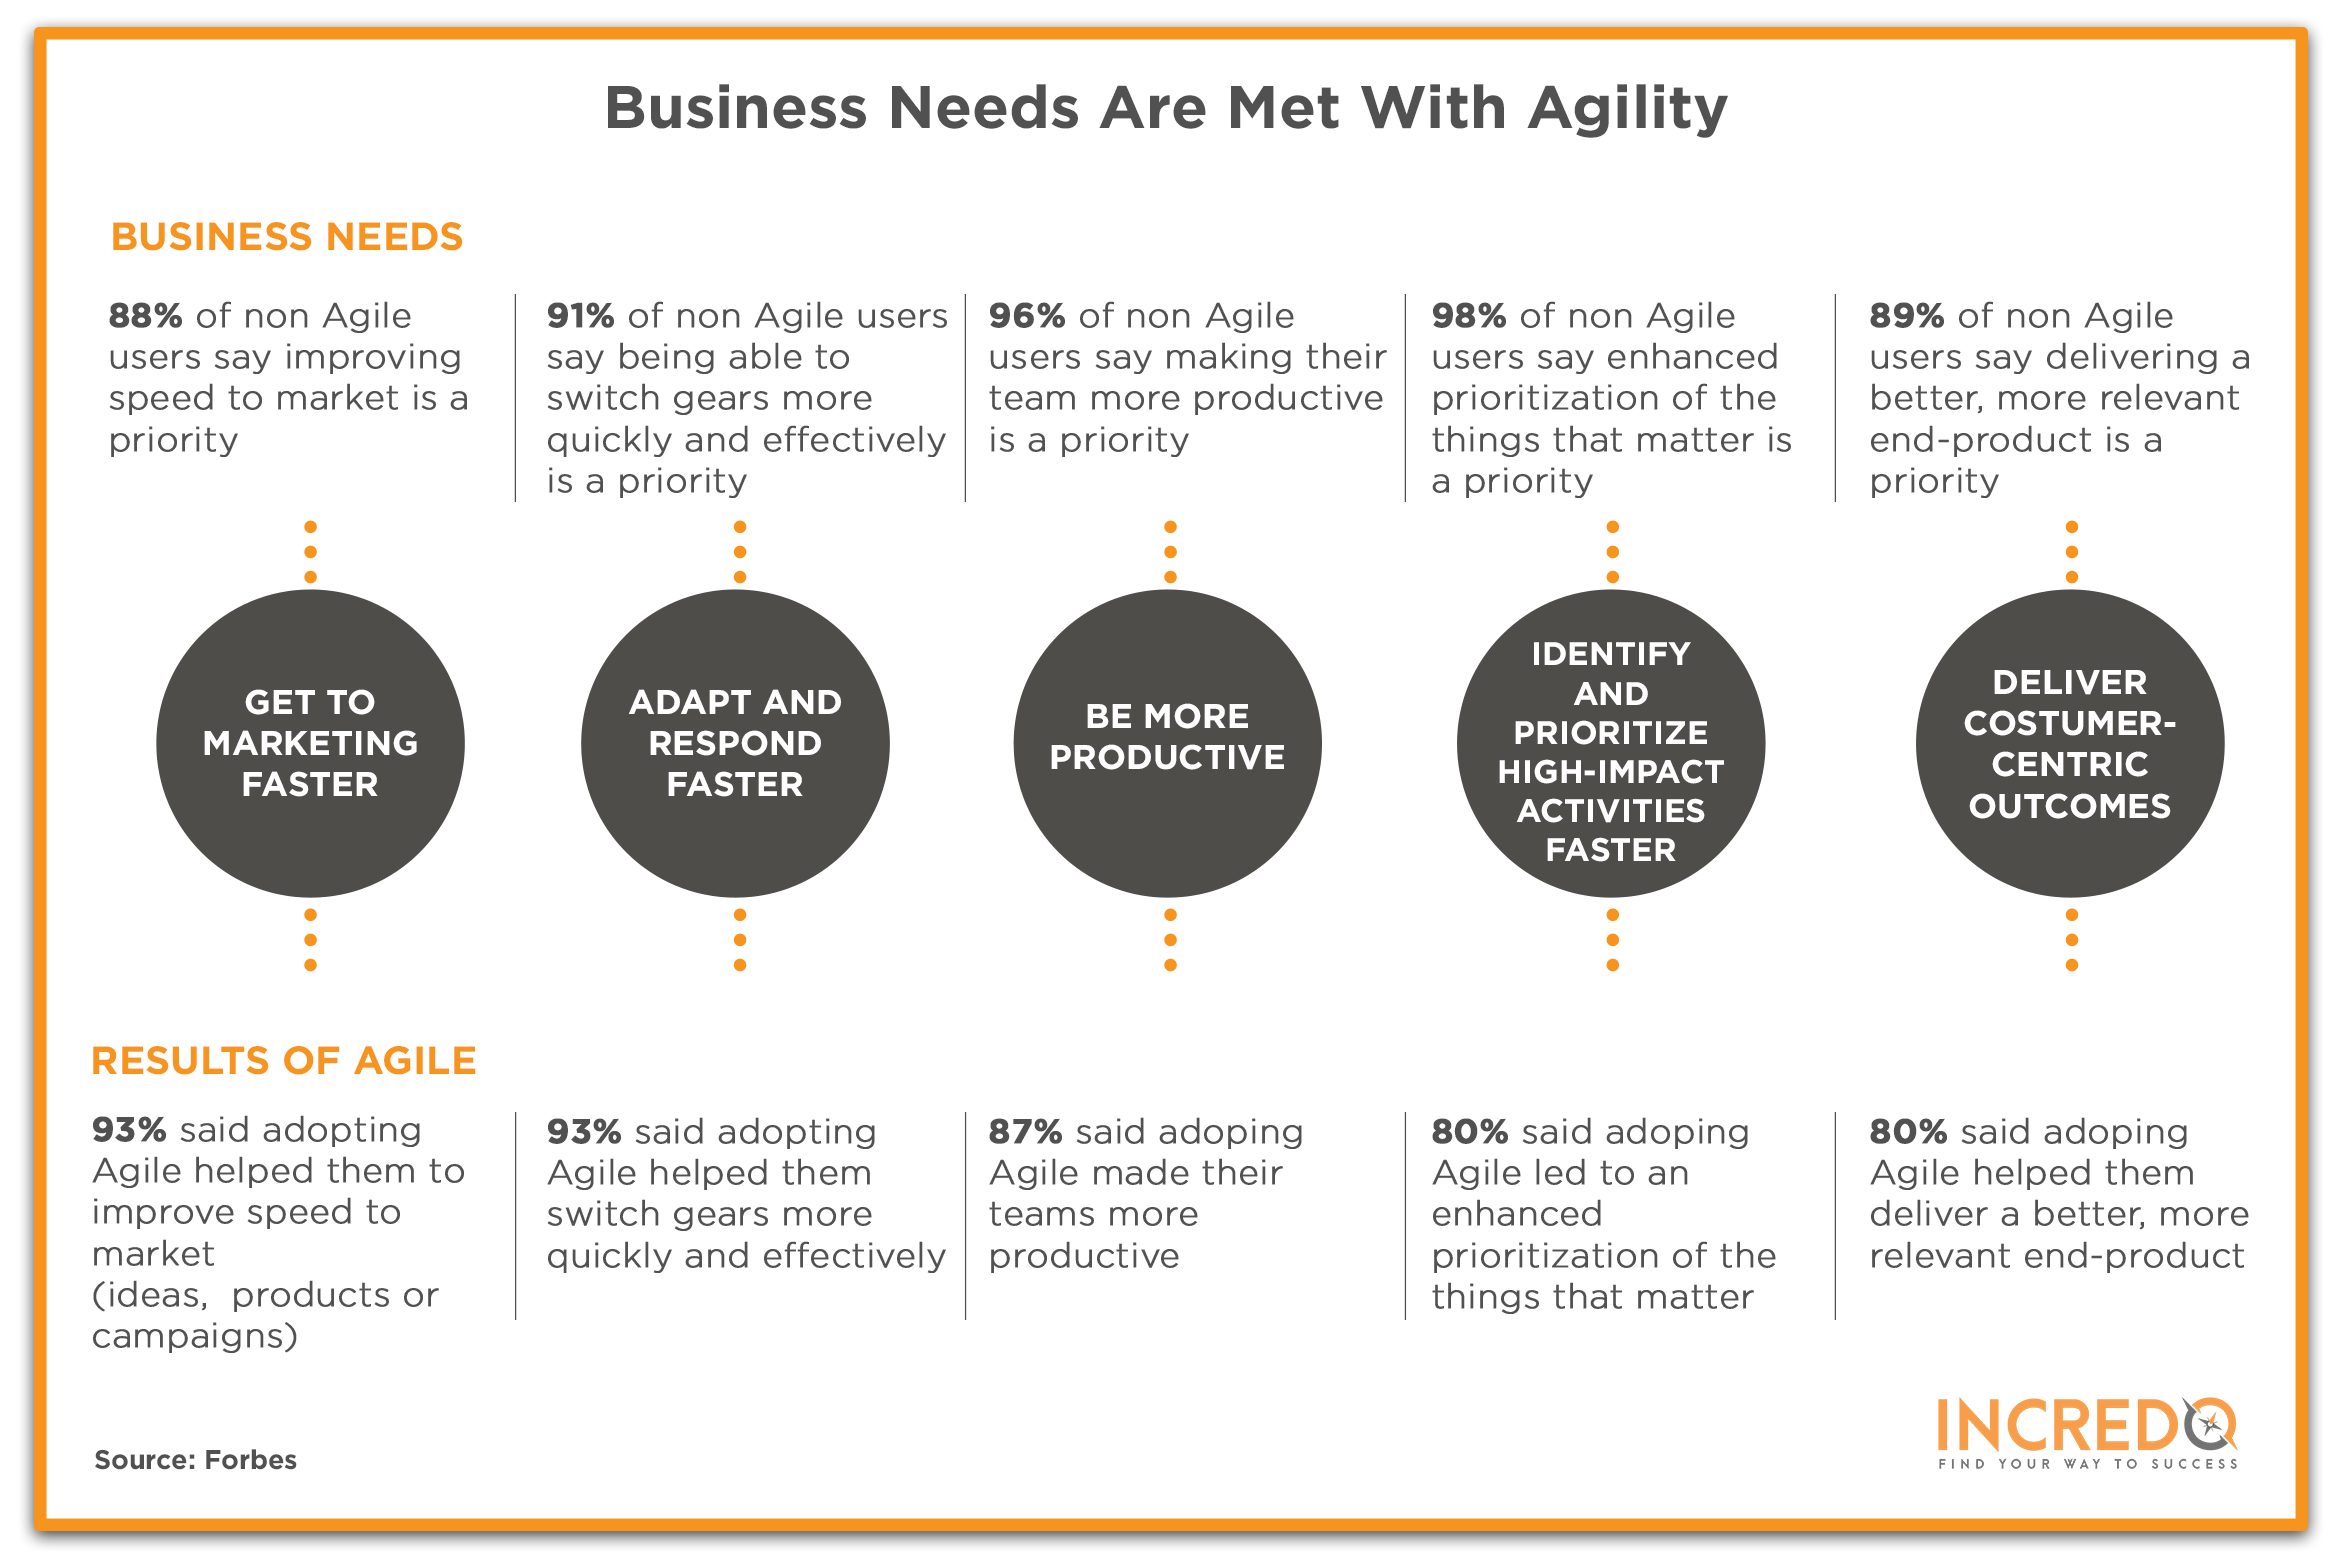 Business needs are met with agility